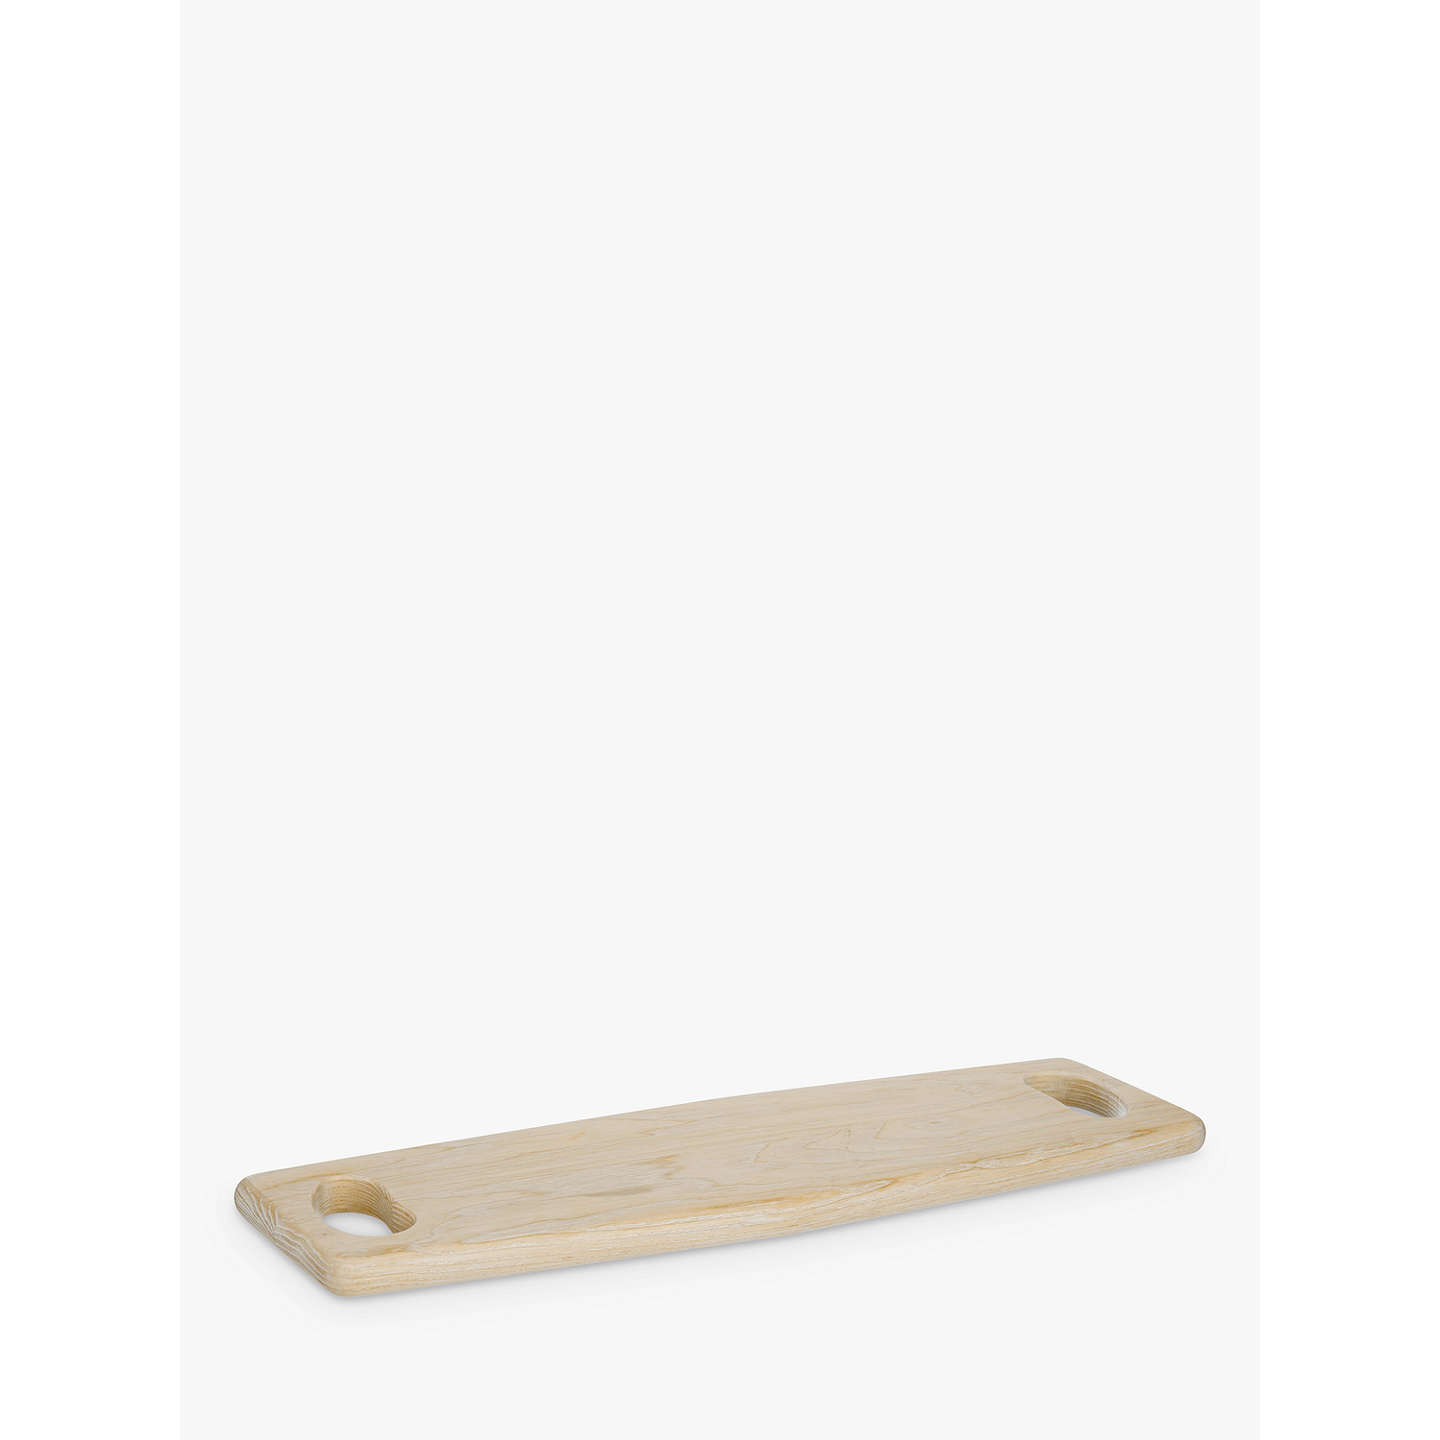 BuyJohn Lewis Coastal Dual Handle Ash Wood Serving Board, Natural Online at johnlewis.com